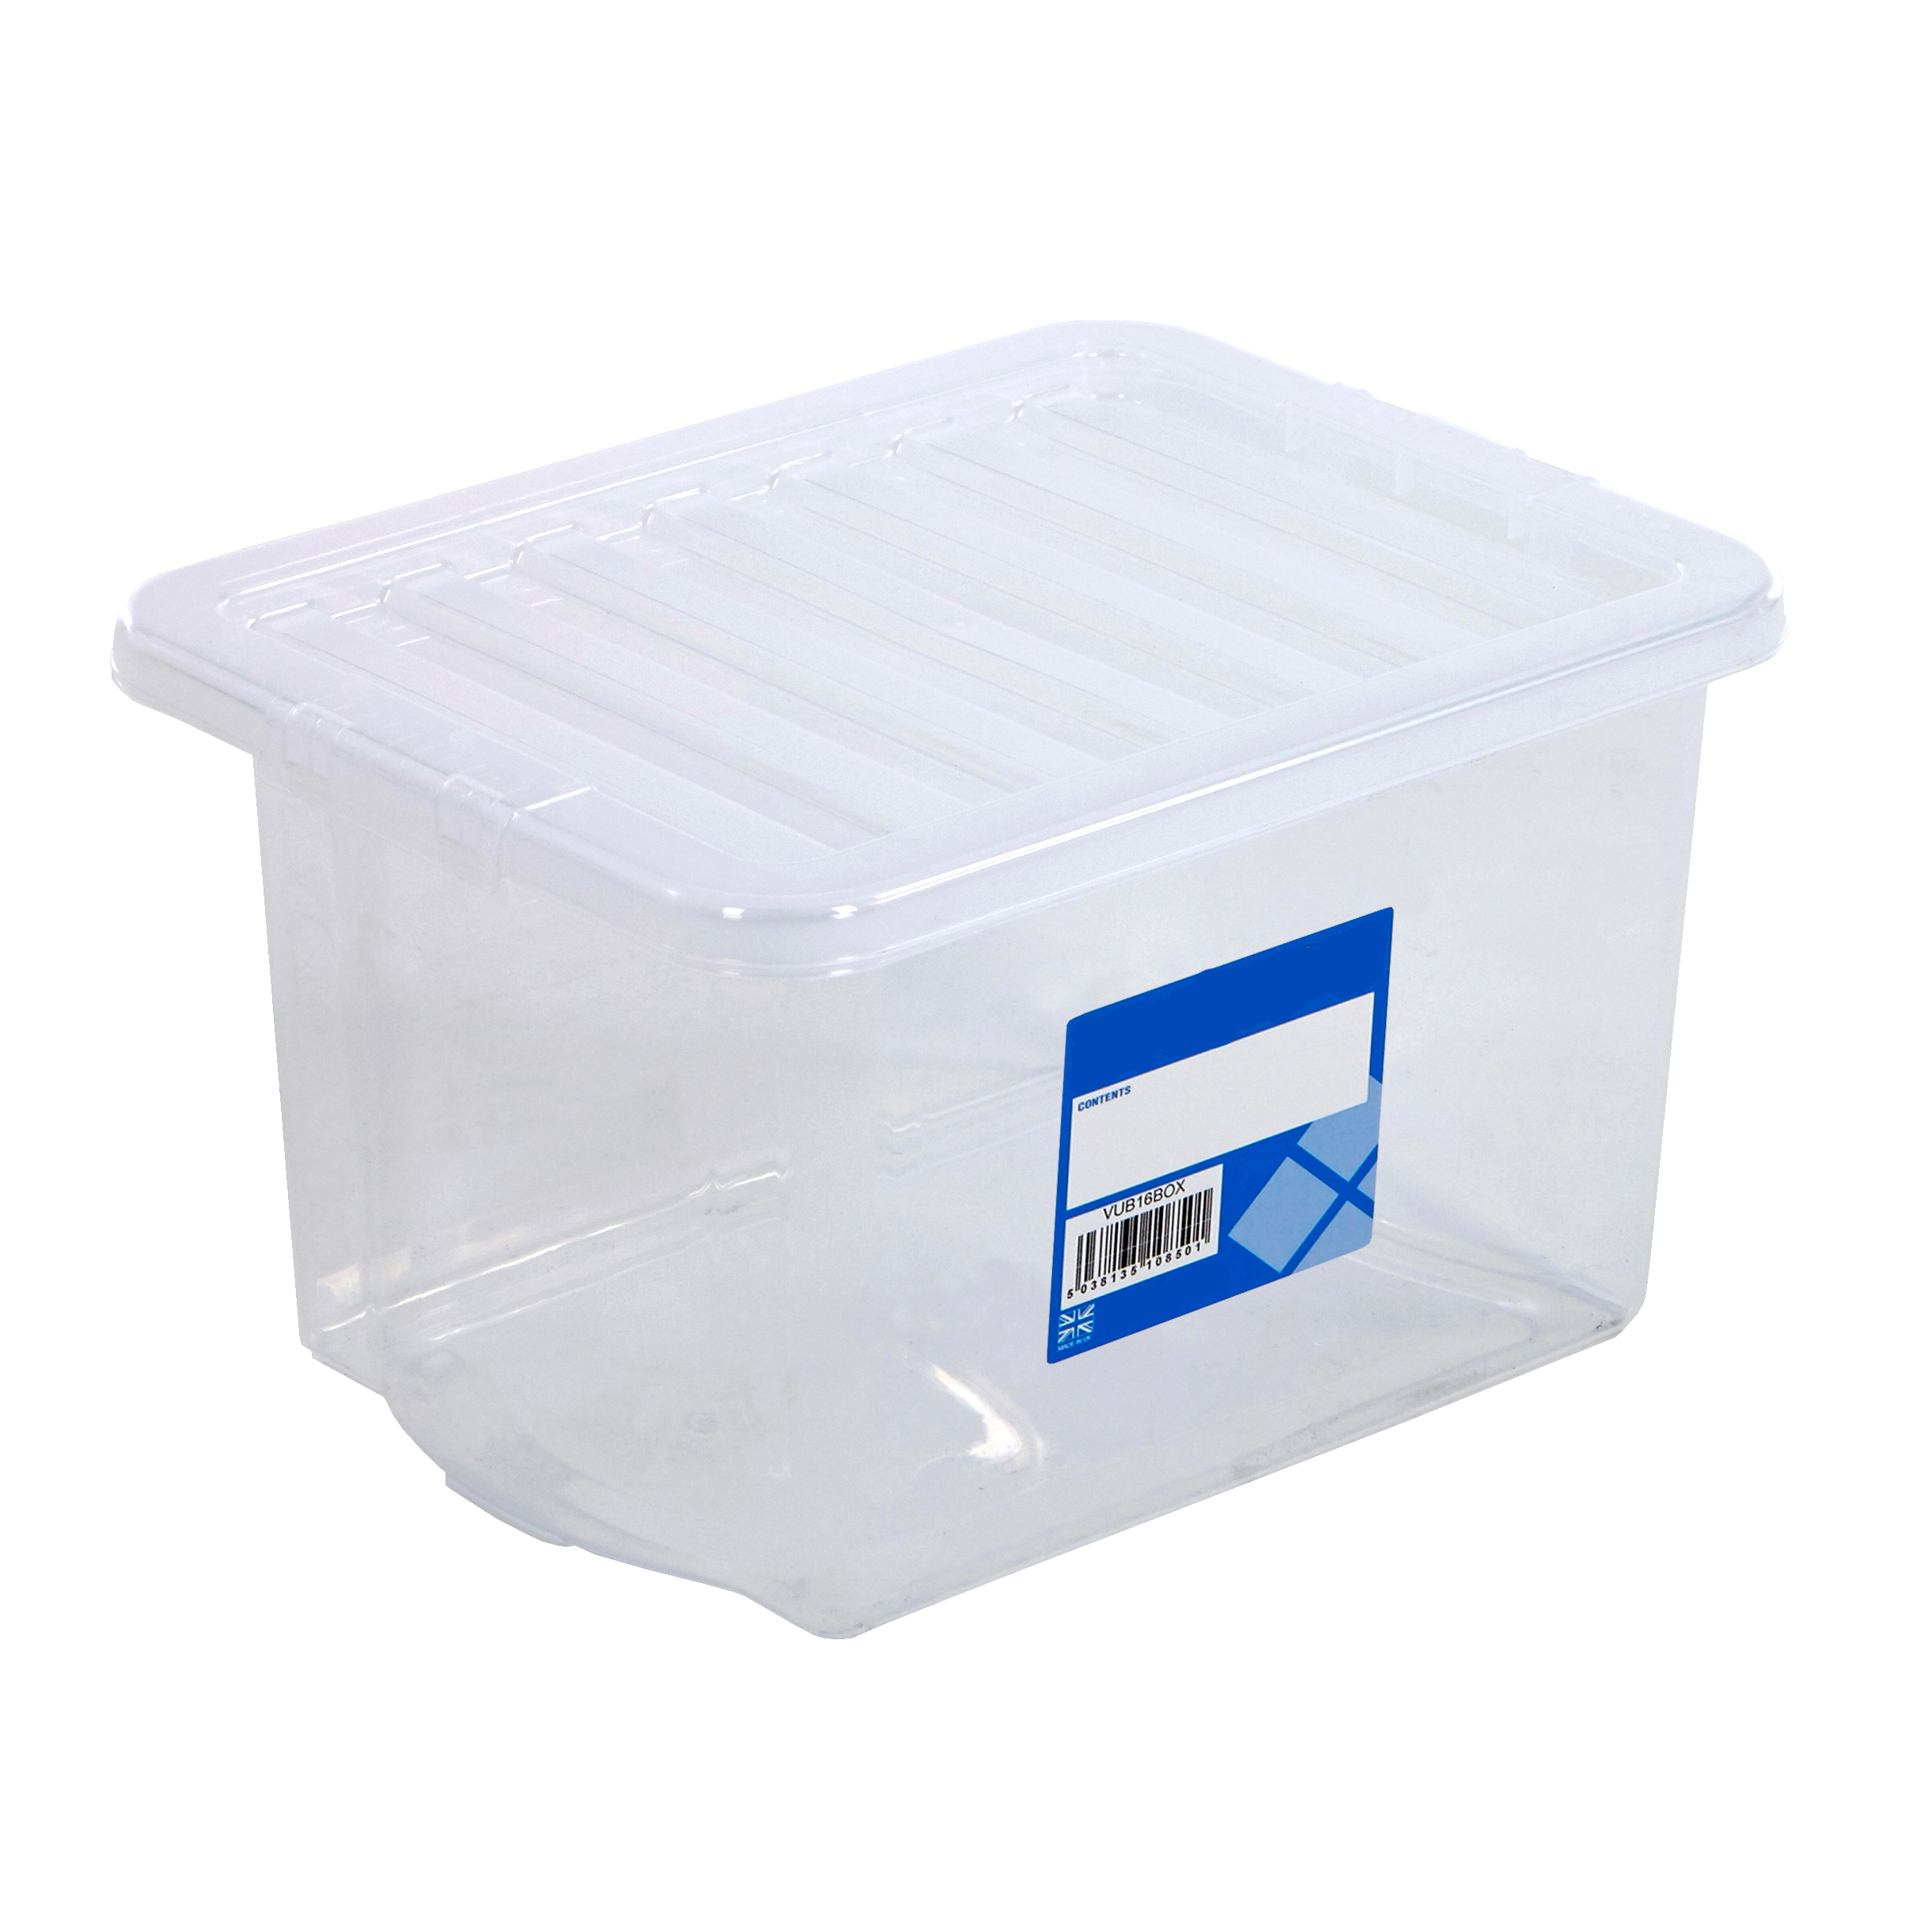 24 litre storage boxes clear plastic containers with lids multi pack home office ebay. Black Bedroom Furniture Sets. Home Design Ideas